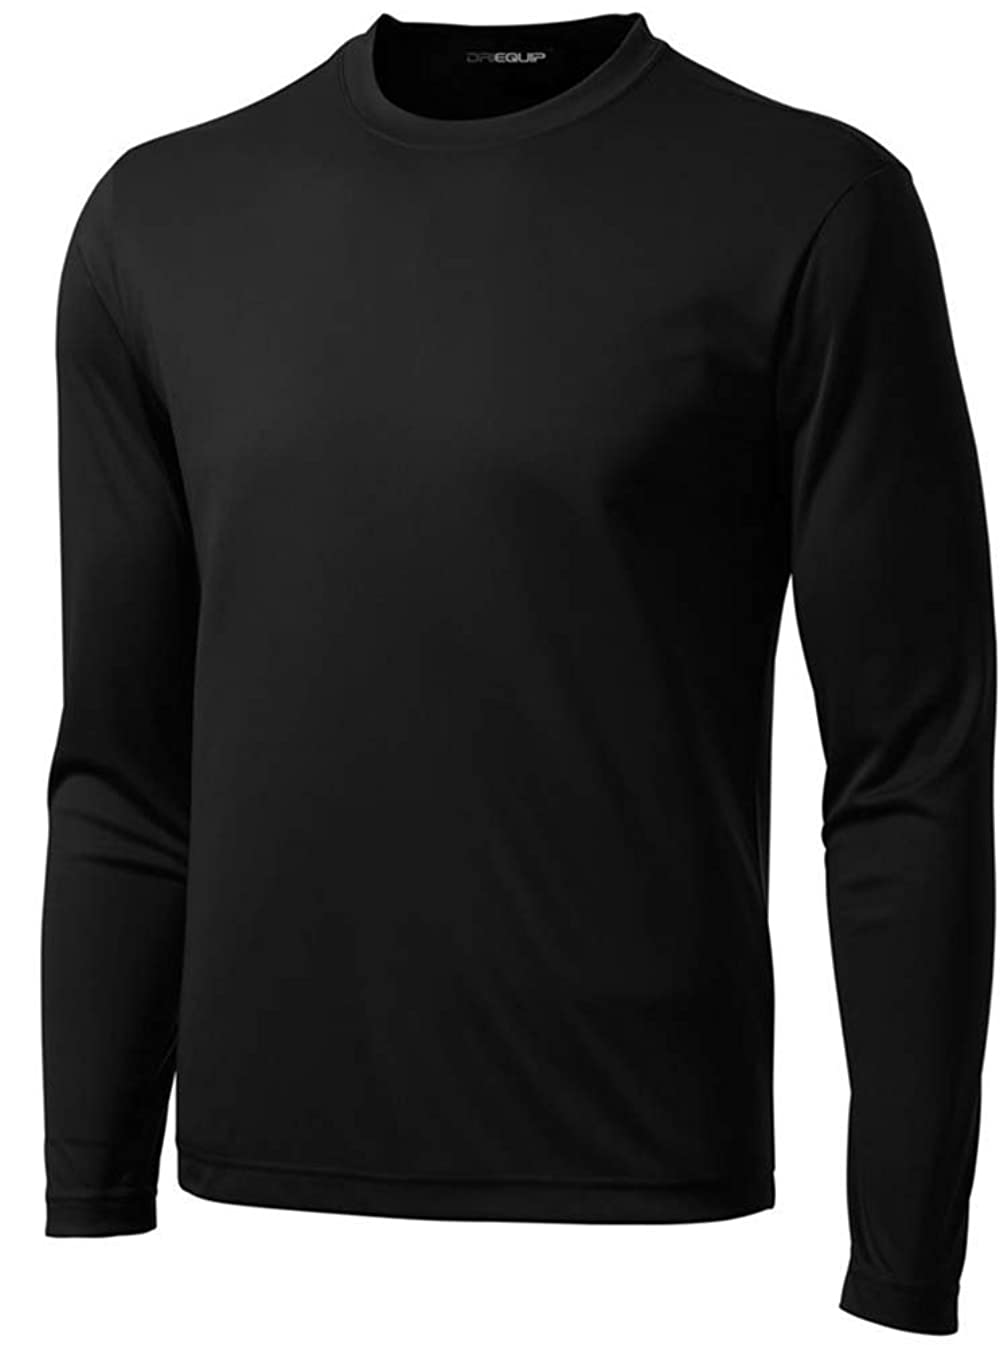 DRI-Equip Men's Big and Tall Long Sleeve Moisture Wicking Athletic T-Shirts